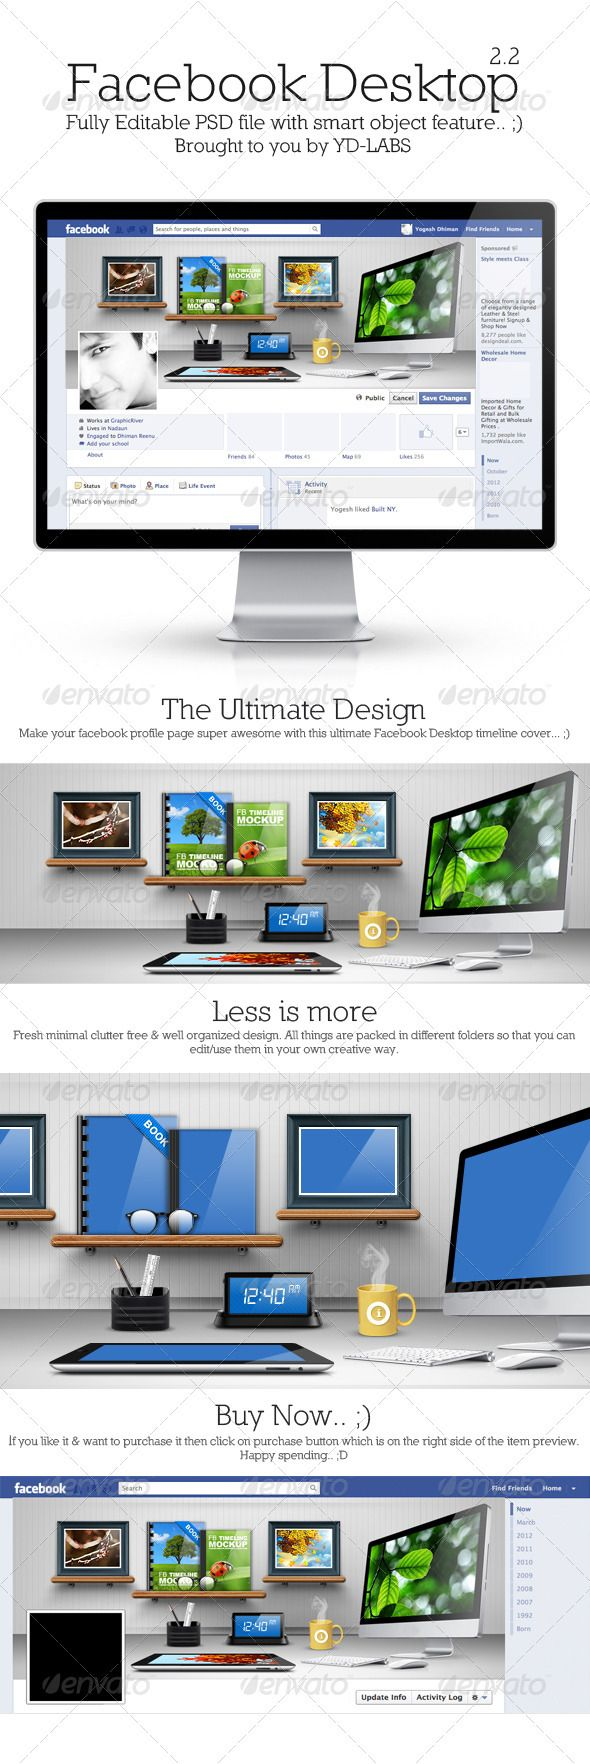 FB Desktop 2.2  #GraphicRiver         Item – FB Desktop 2.2 | Photoshop PSD | Pixel Dimensions 851×315 | Replace your images via Smart Objects   All items in this PSD are fully editable & packed in different folders, so that you can adjust them according to your choice/taste.   Font Used -  Arial digital-7  .dafont /digital-7.font  Photodune Credits -  photodune /item/ladybug-on-grass/1911685 photodune /item/nature/1178180 photodune /item/vintage-nature-background/2514391 photodune…